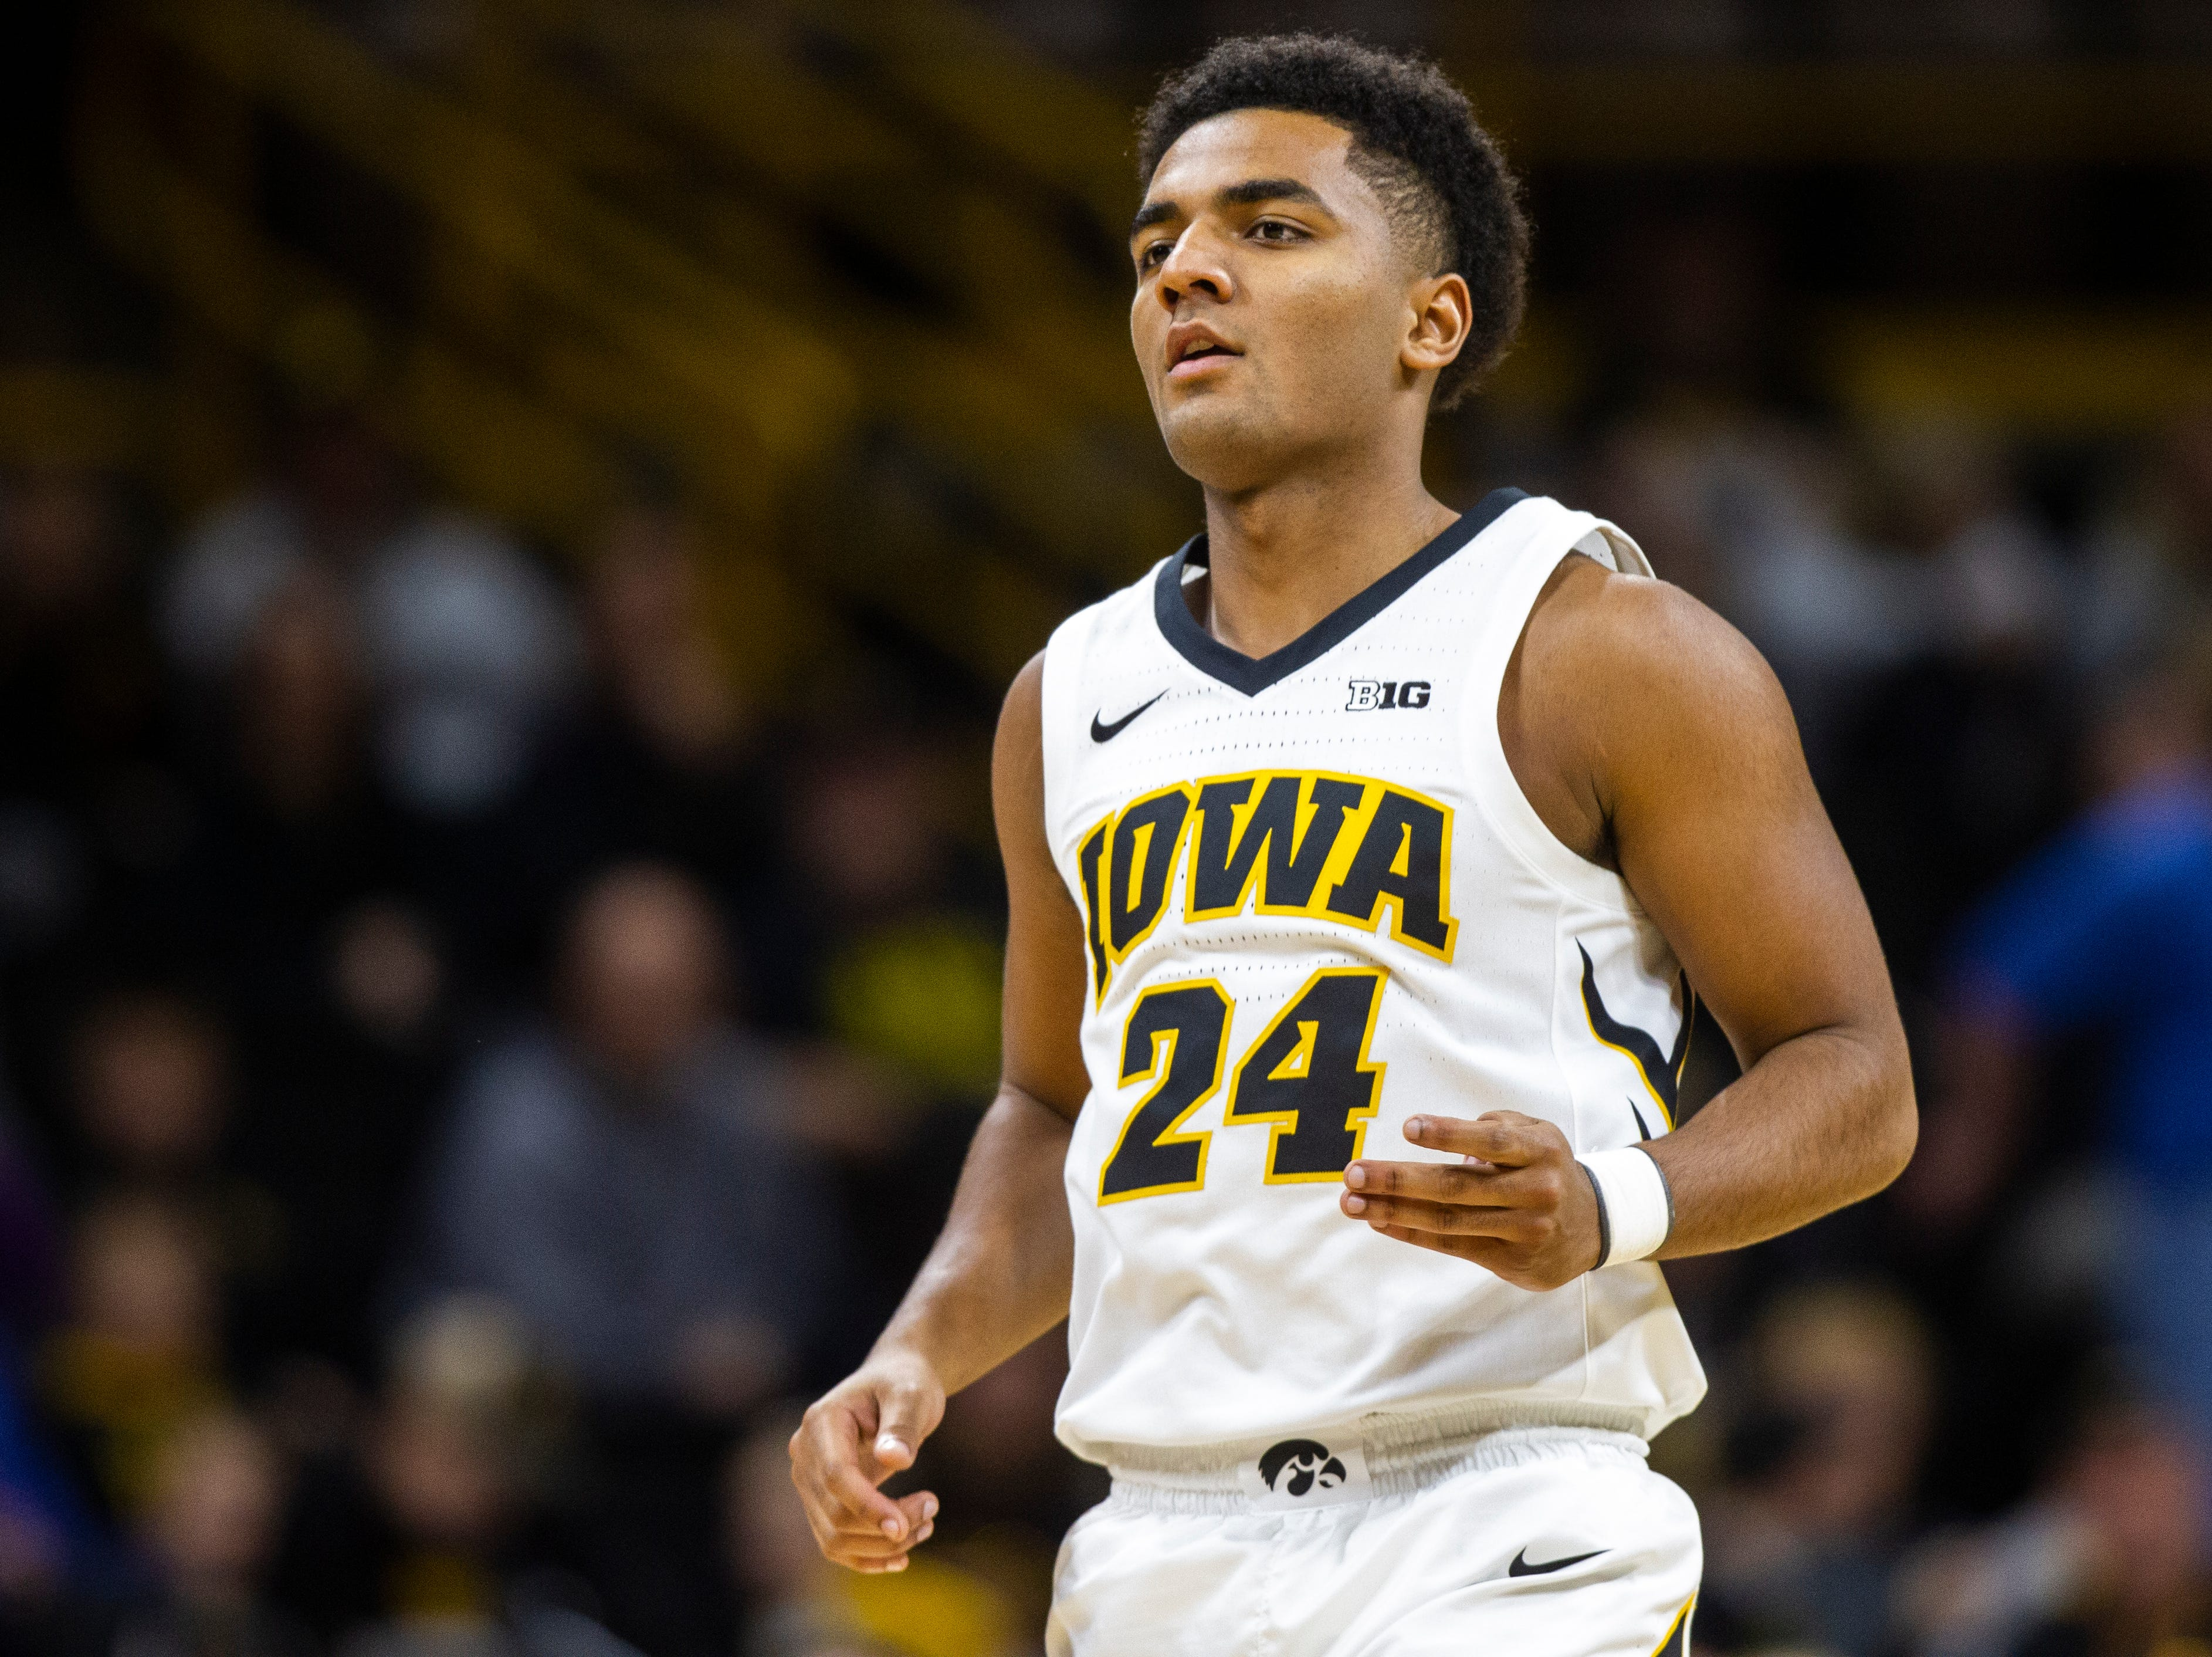 Iowa guard Nicolas Hobbs (24) jogs backwards during a men's basketball exhibition game on Sunday, Nov. 4, 2018, at Carver-Hawkeye Arena in Iowa City.